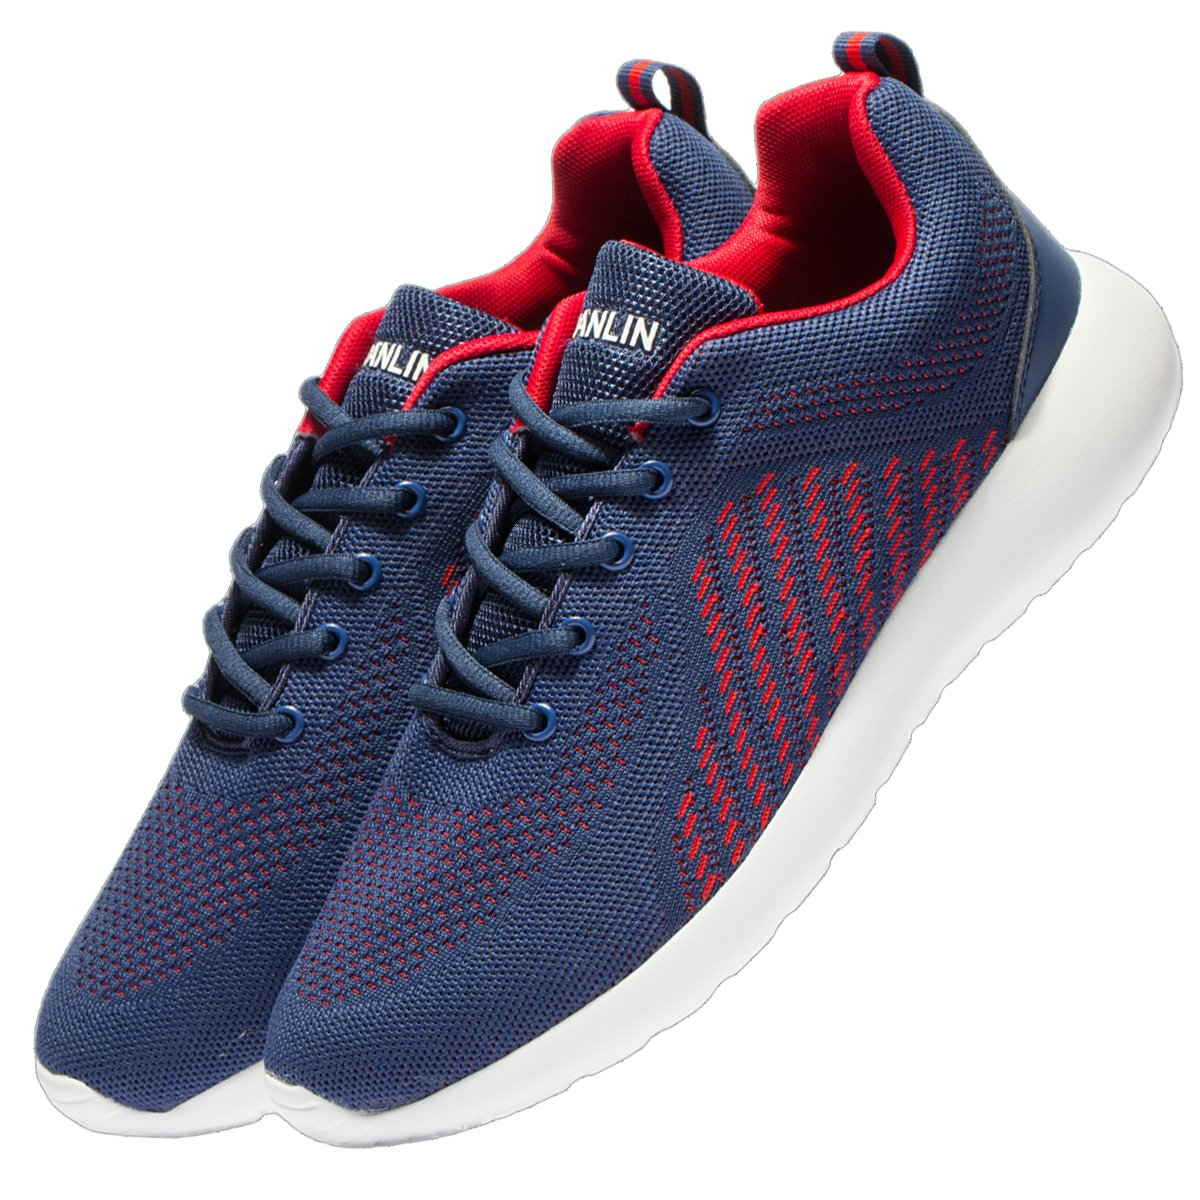 VSDANLIN Men's Breathable Knit Running Shoes Lightweight Athletic Shoes Outdoor Sneakers (47 M EU/13 D(M) US, Blue/Red) by VSDANLIN